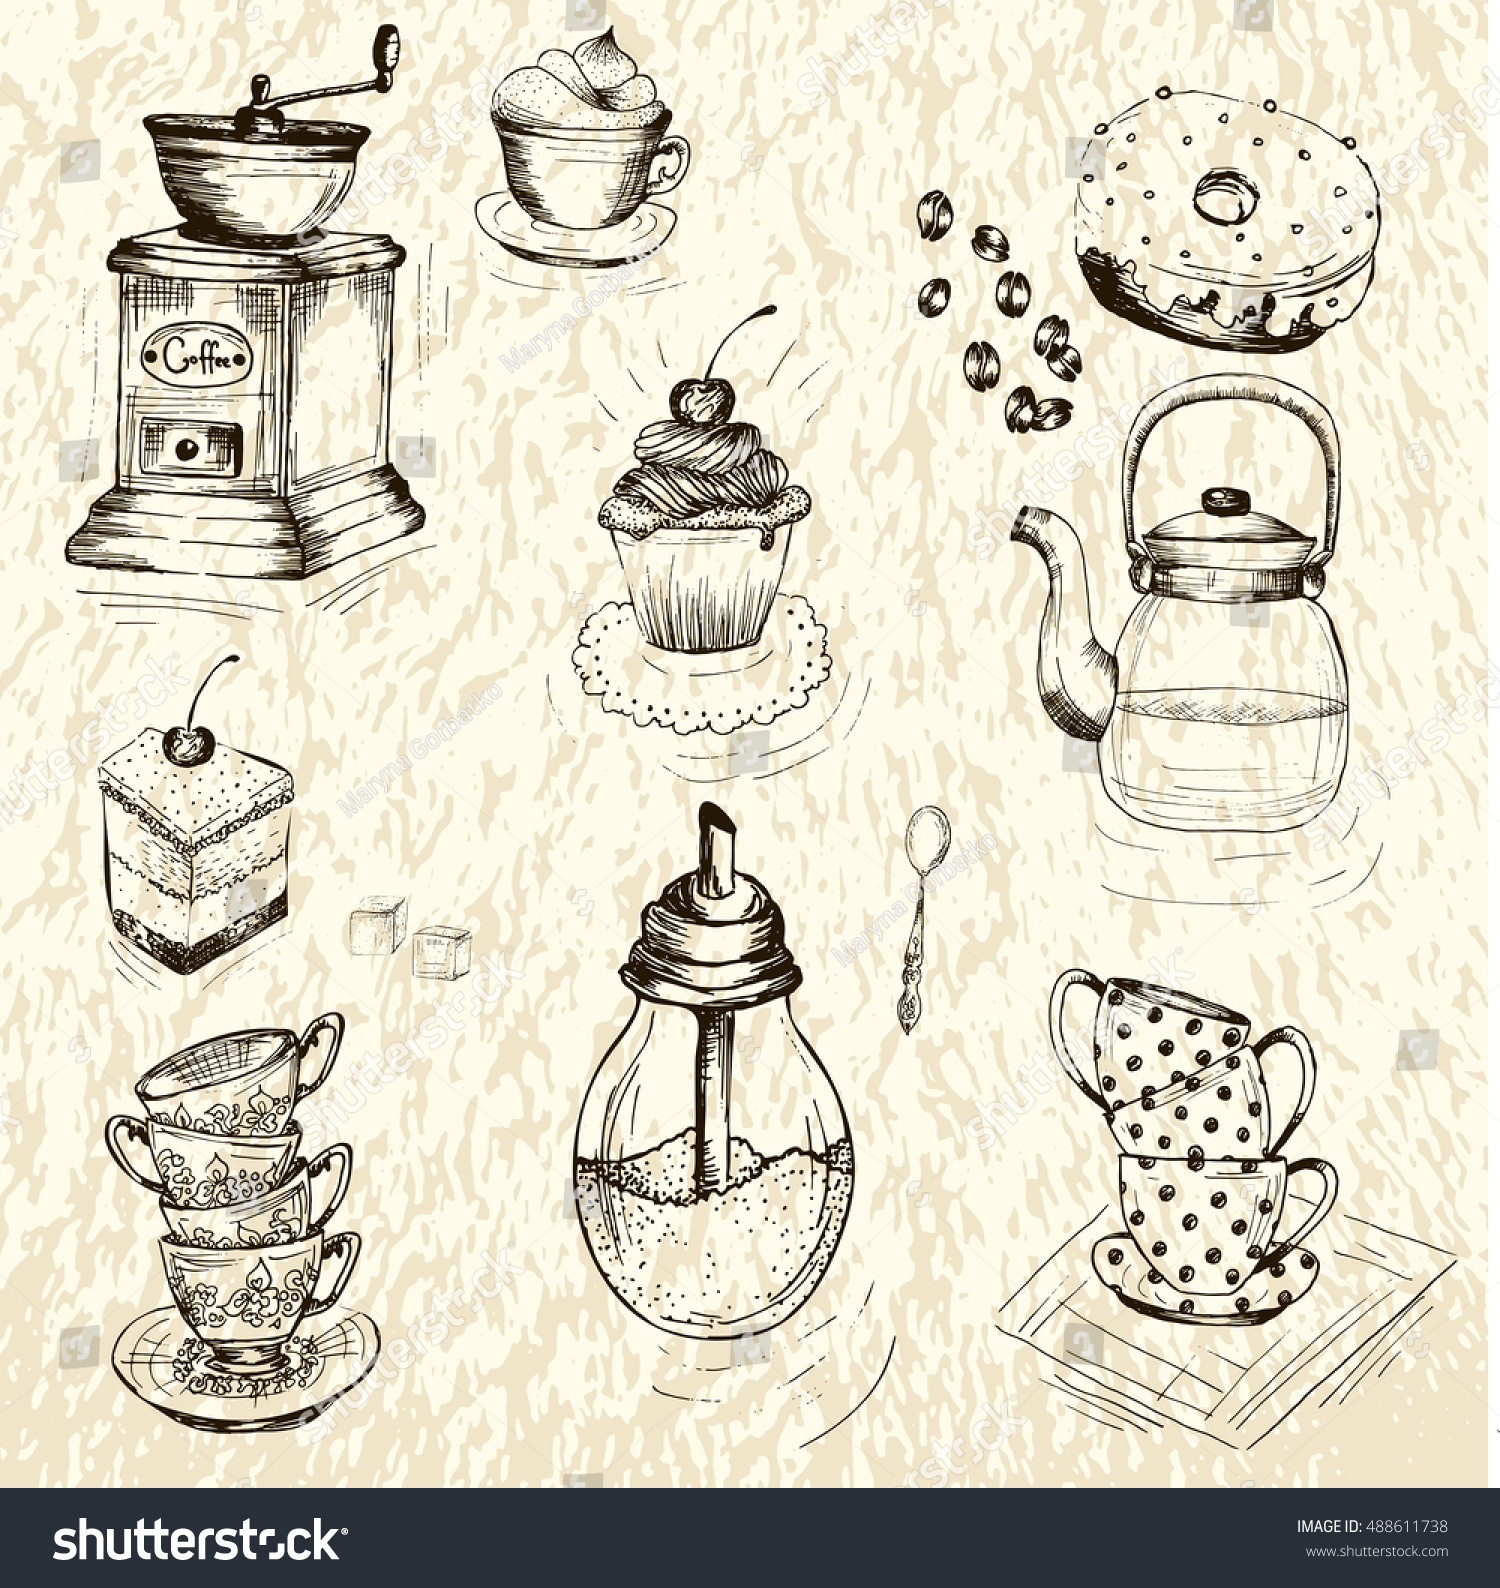 Collection of hand drawn sketches on the theme of tea and coffee coffee grinder